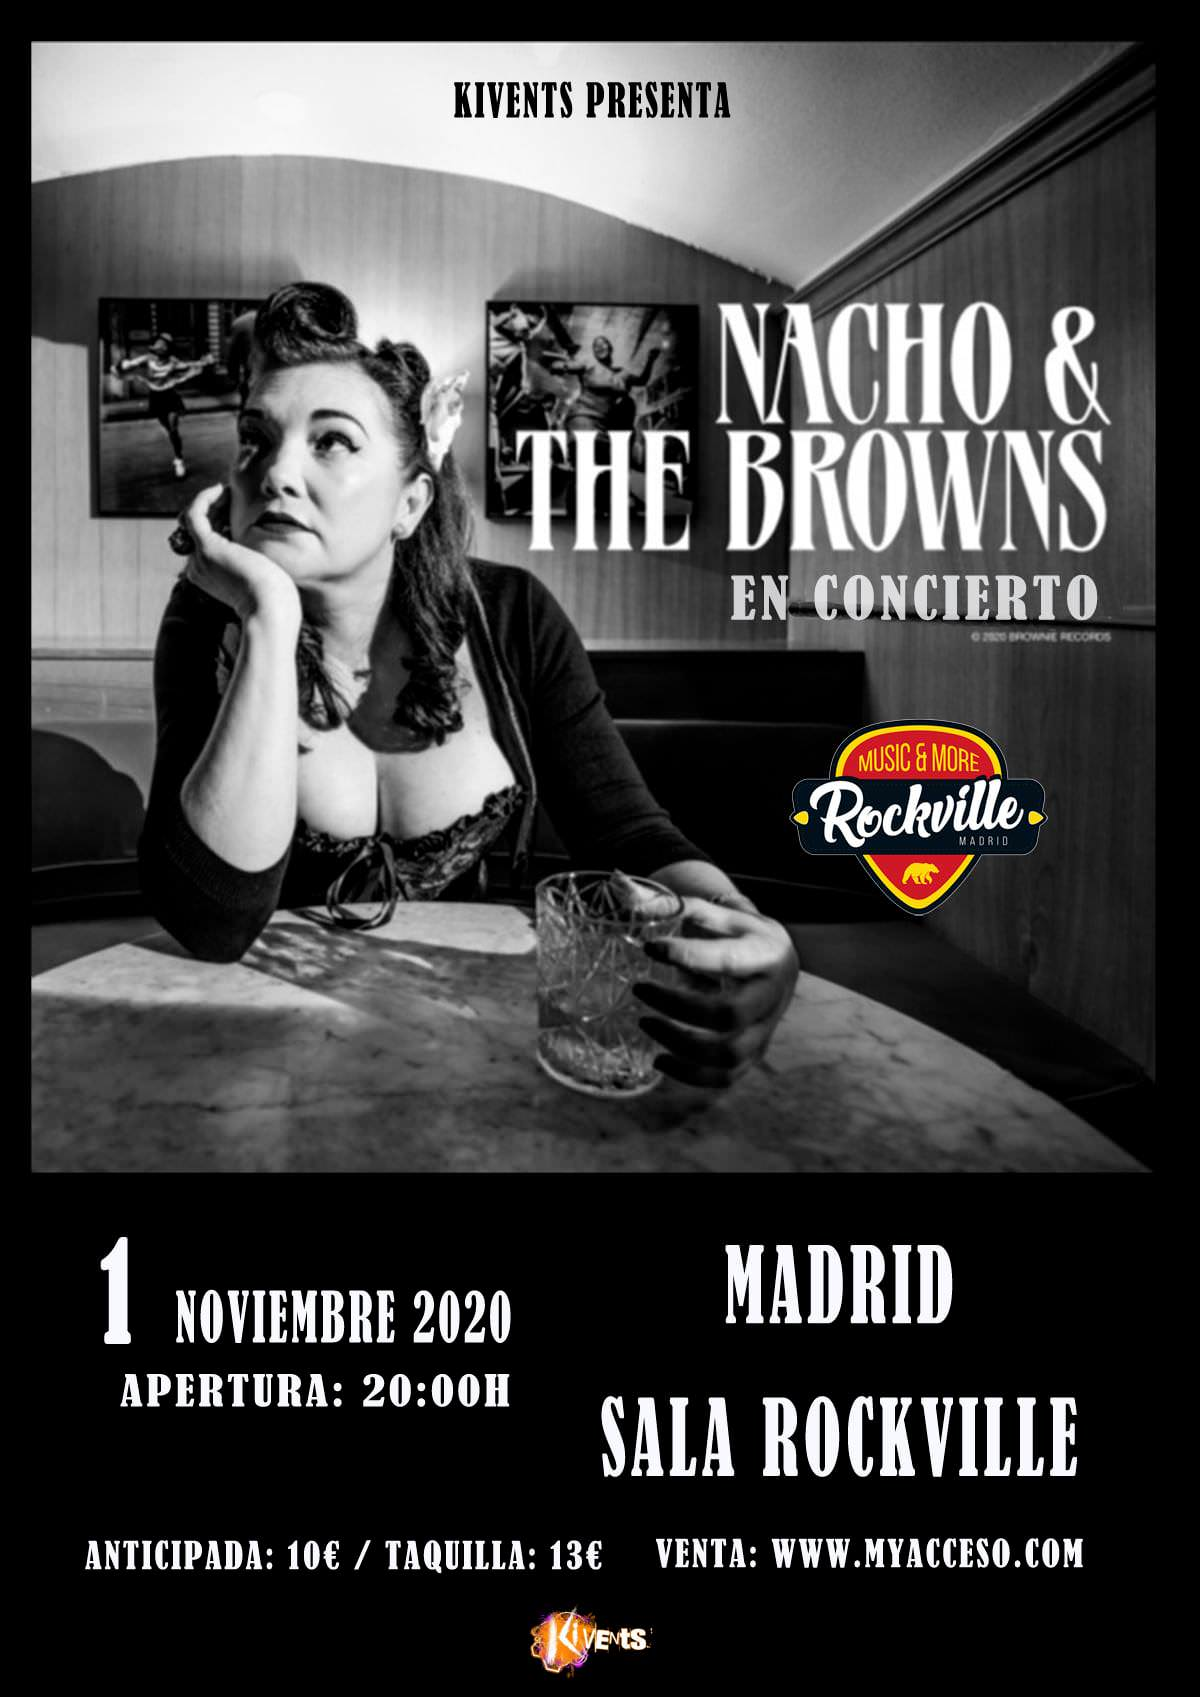 nacho and the browns rockville madrid